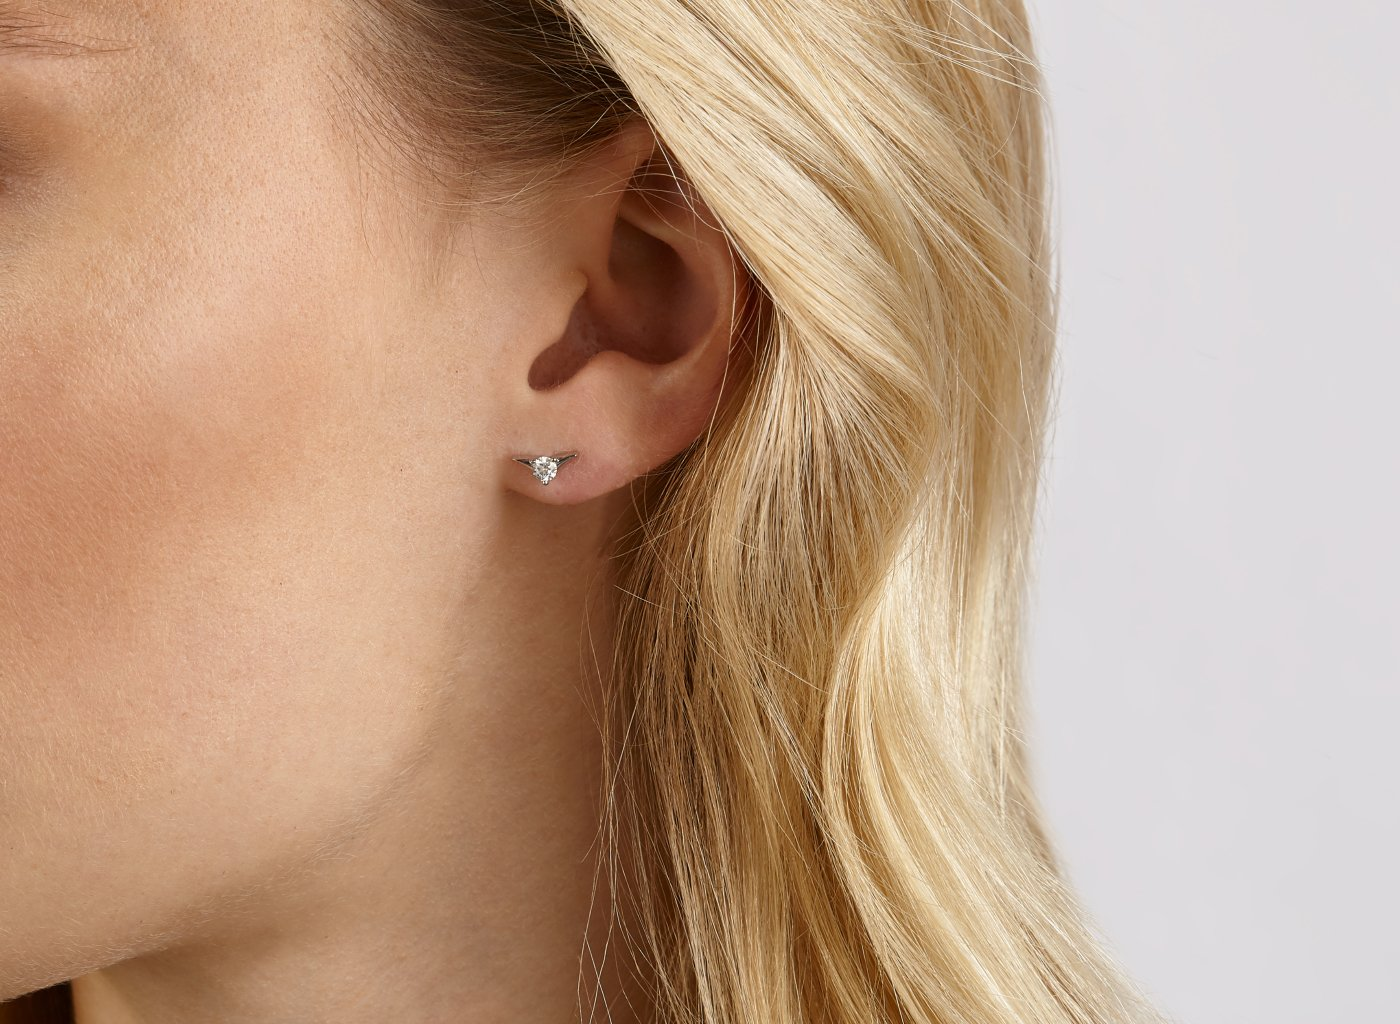 On model view of Chevron 1/8 carat earring with white diamond